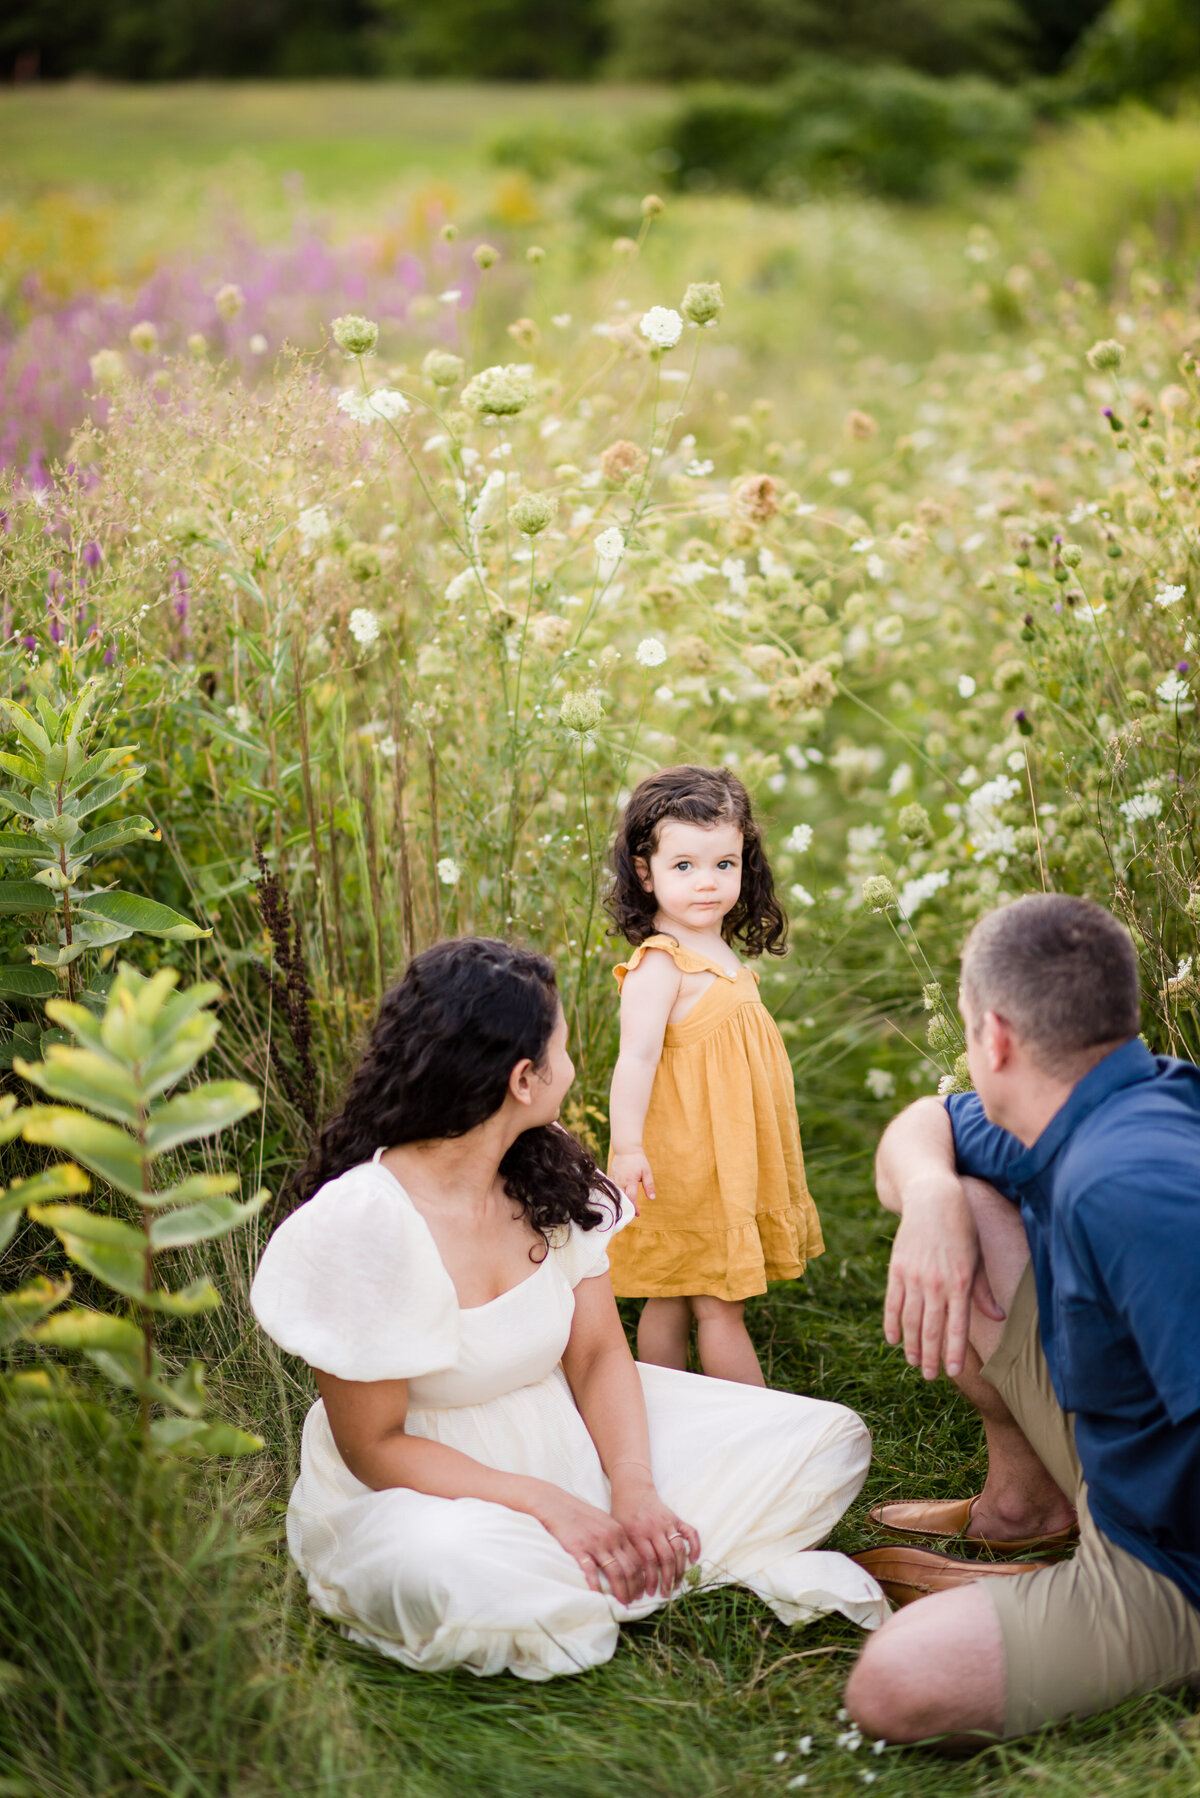 Boston-family-photographer-bella-wang-photography-Lifestyle-session-outdoor-wildflower-67